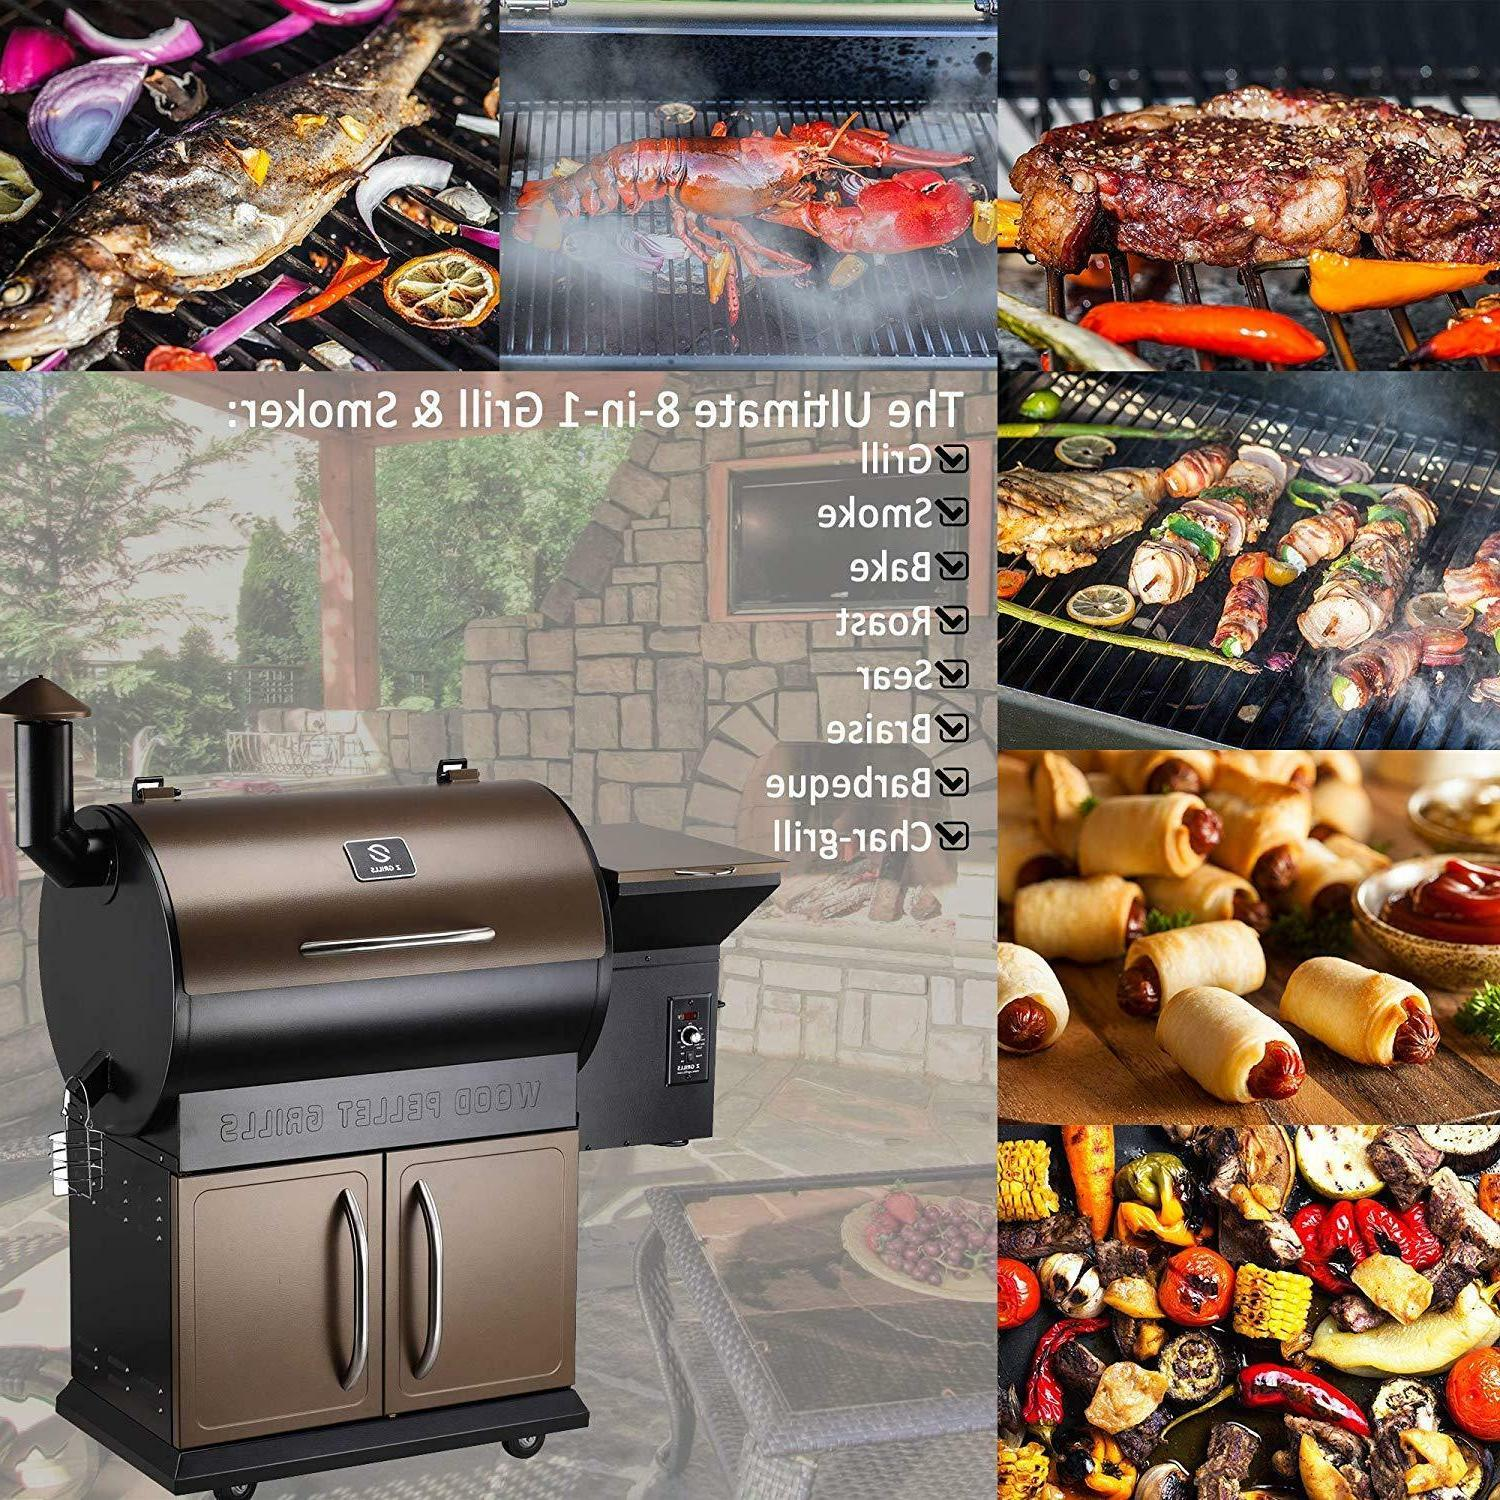 Z Wood Pellet BBQ Smoker Digital